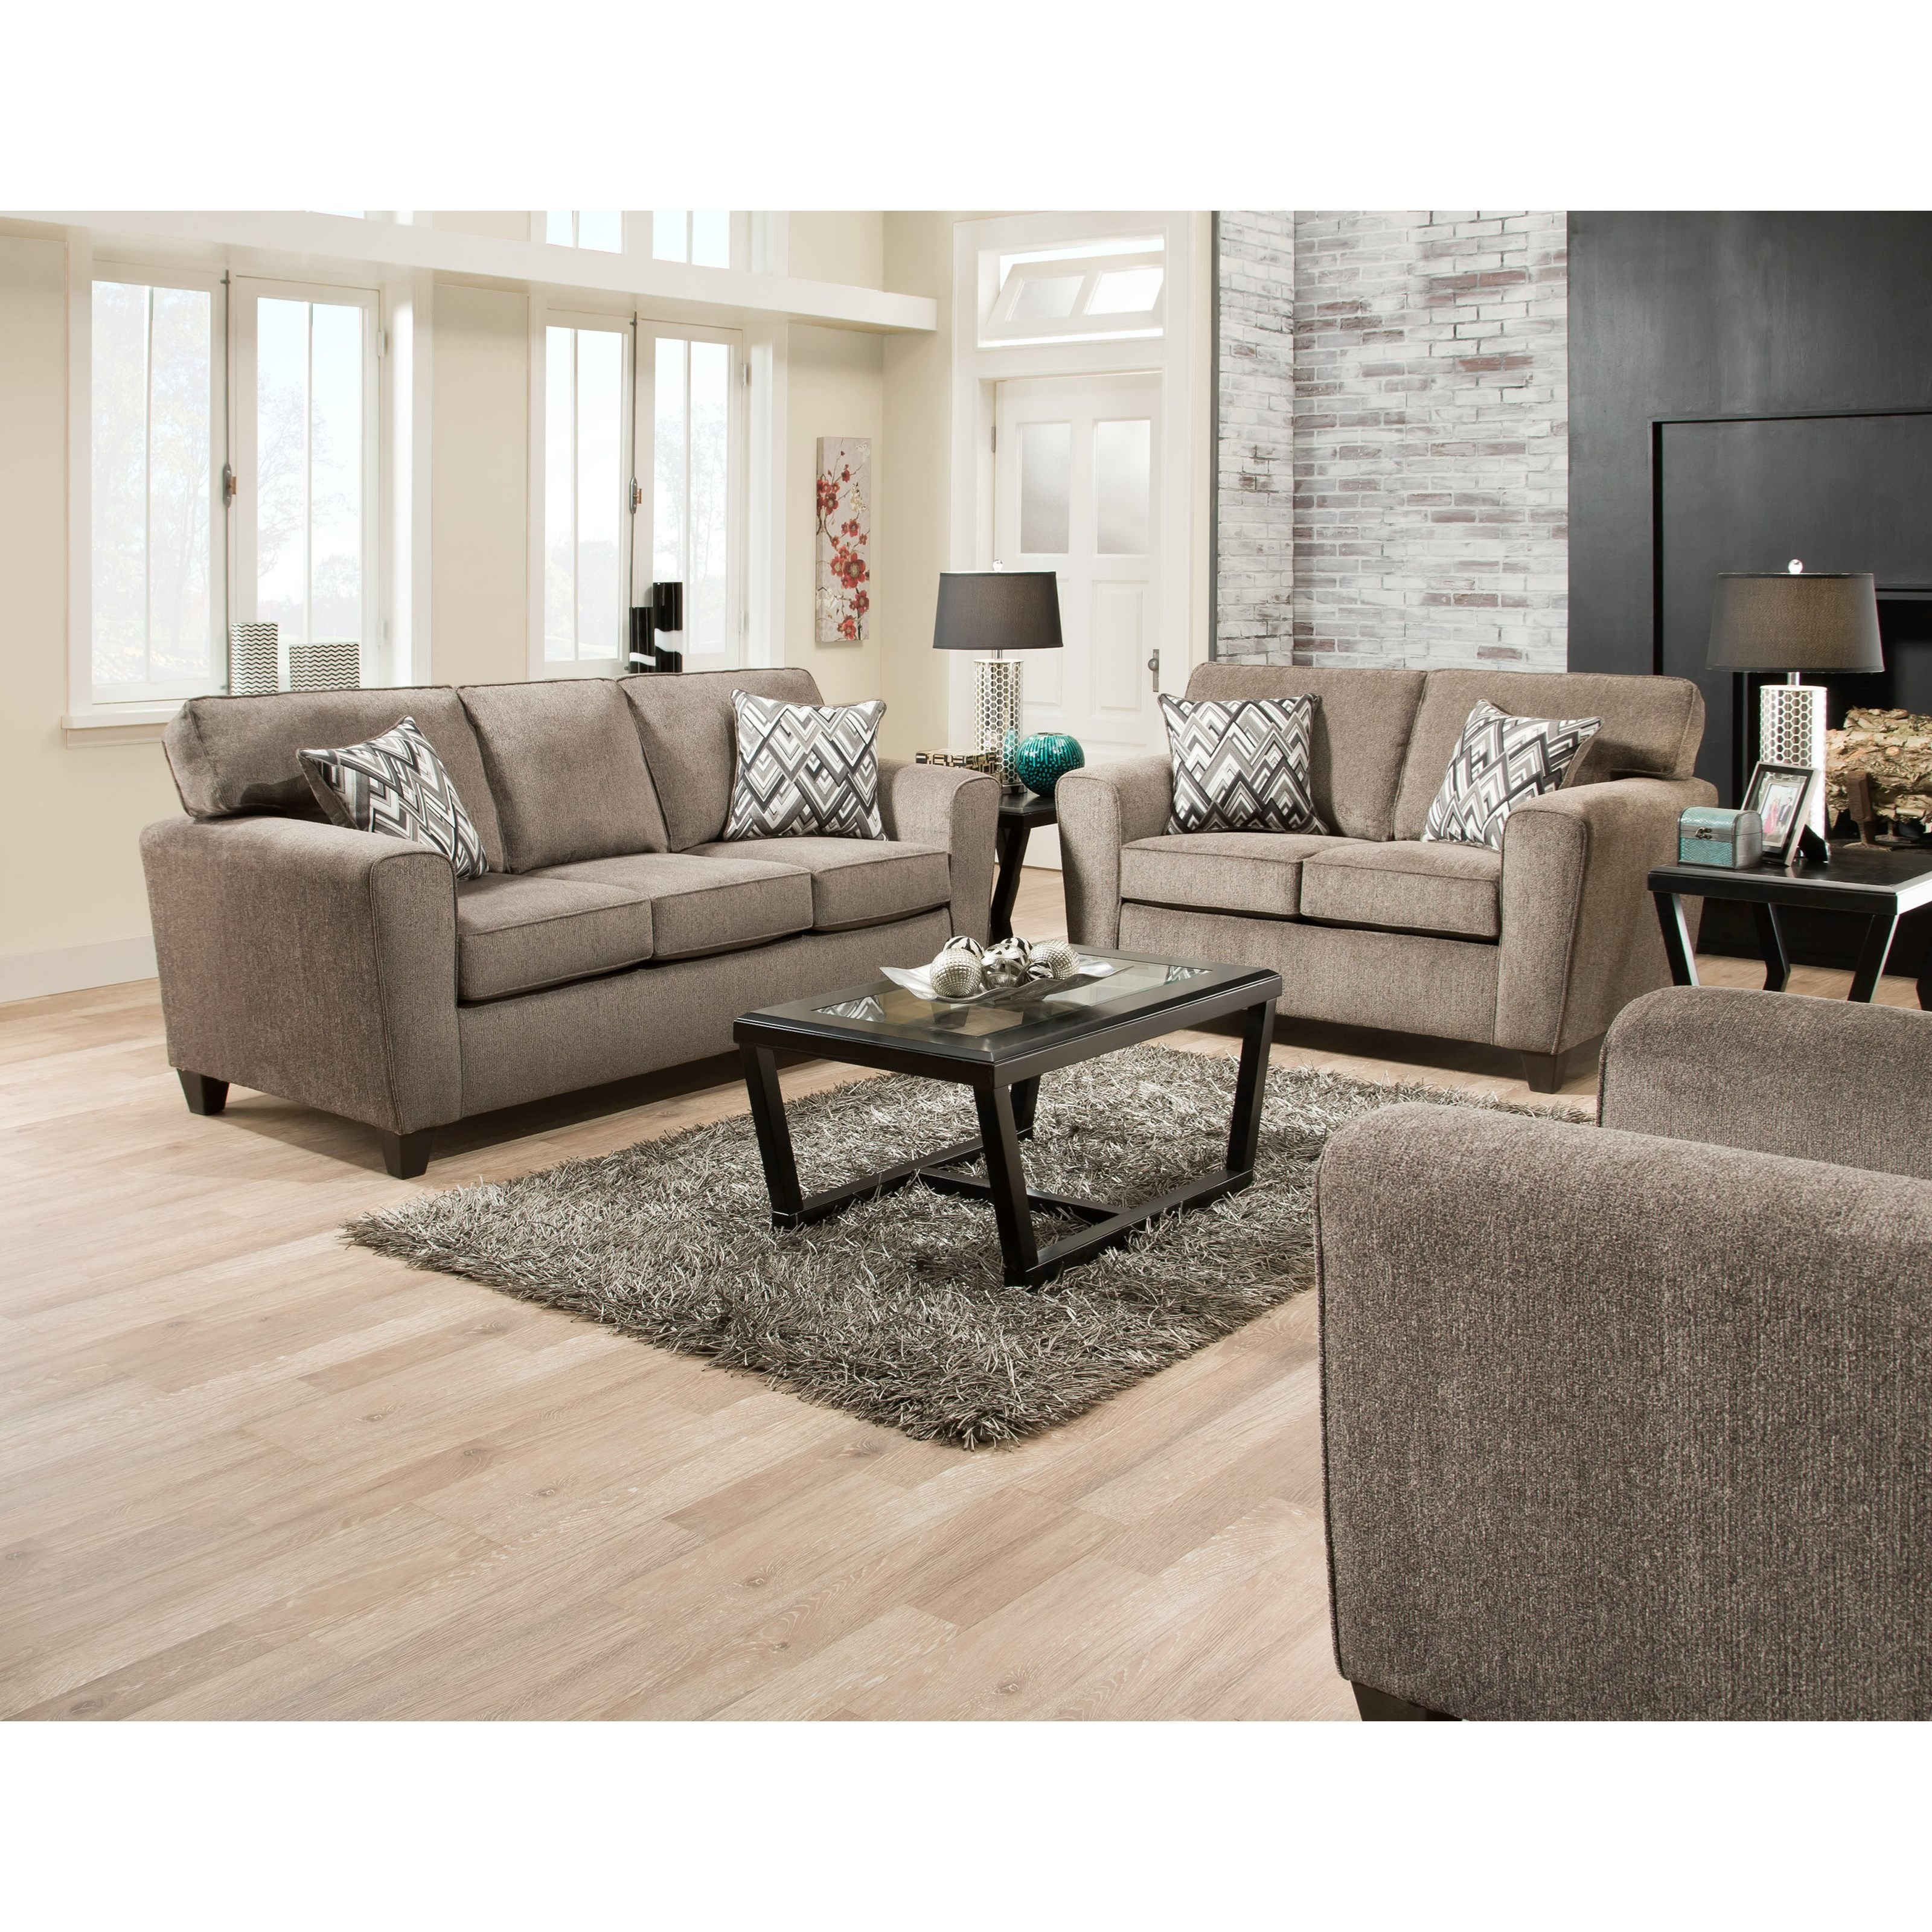 American Furniture 3100 Sofa With Casual Style Prime Brothers Furniture Sofas